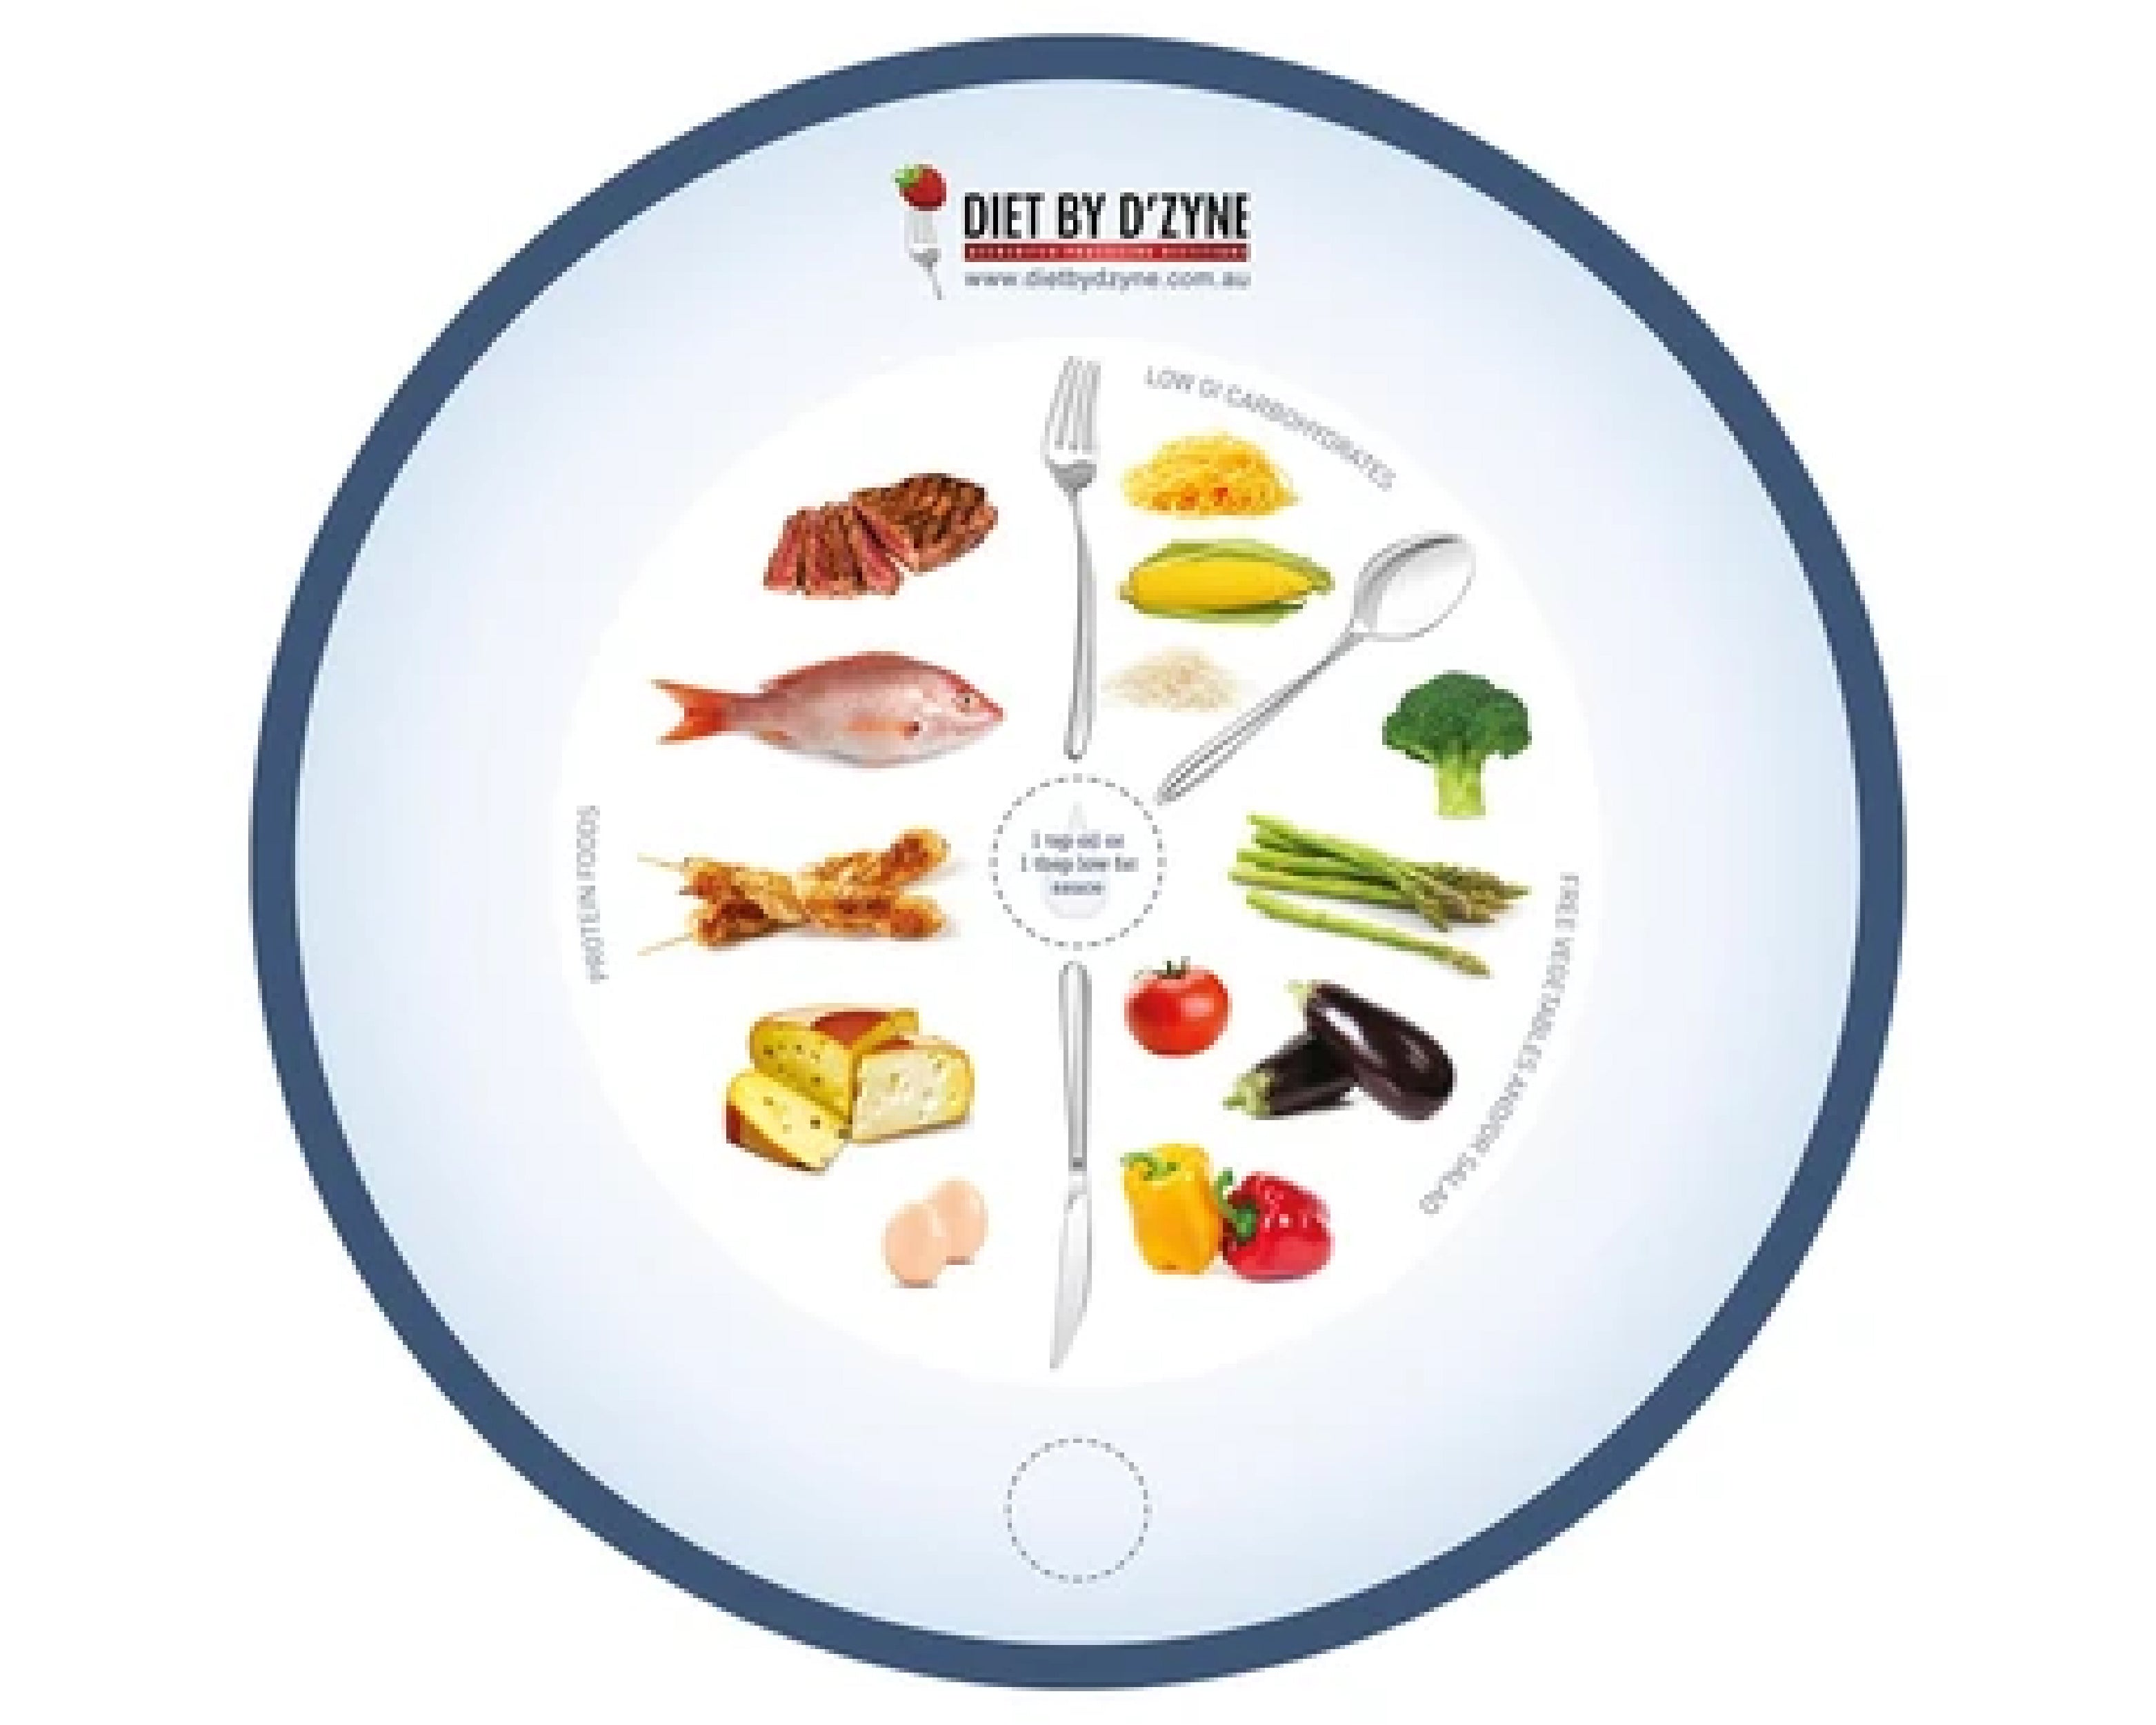 Diet by D'Zyne Portion Plate